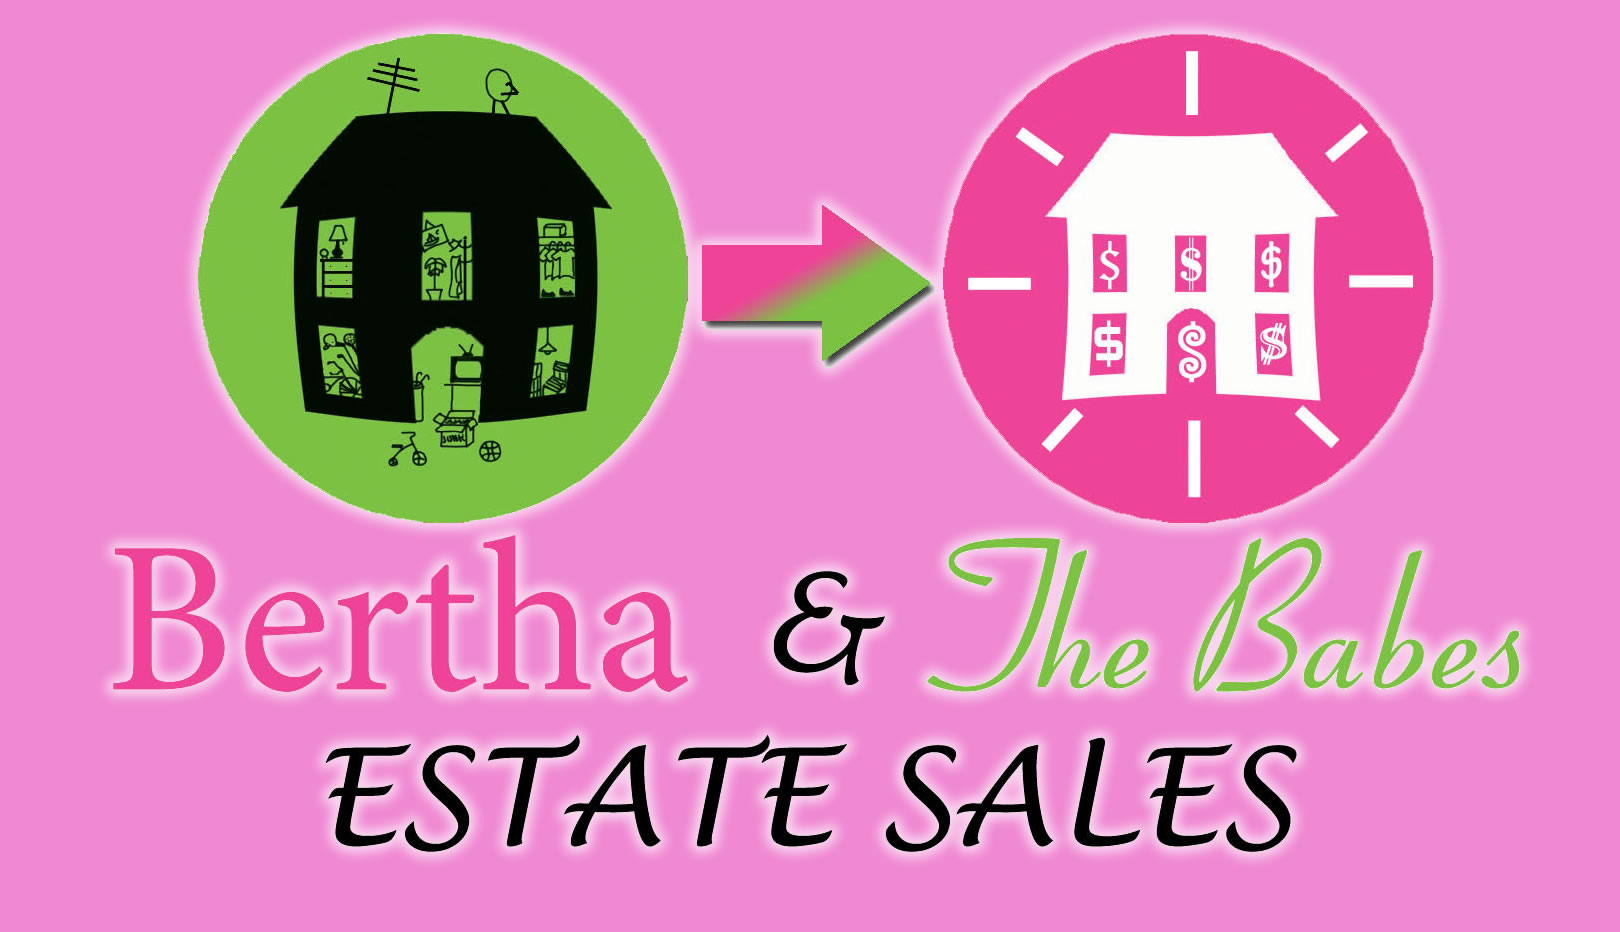 Bertha and the Babes Estate Sales